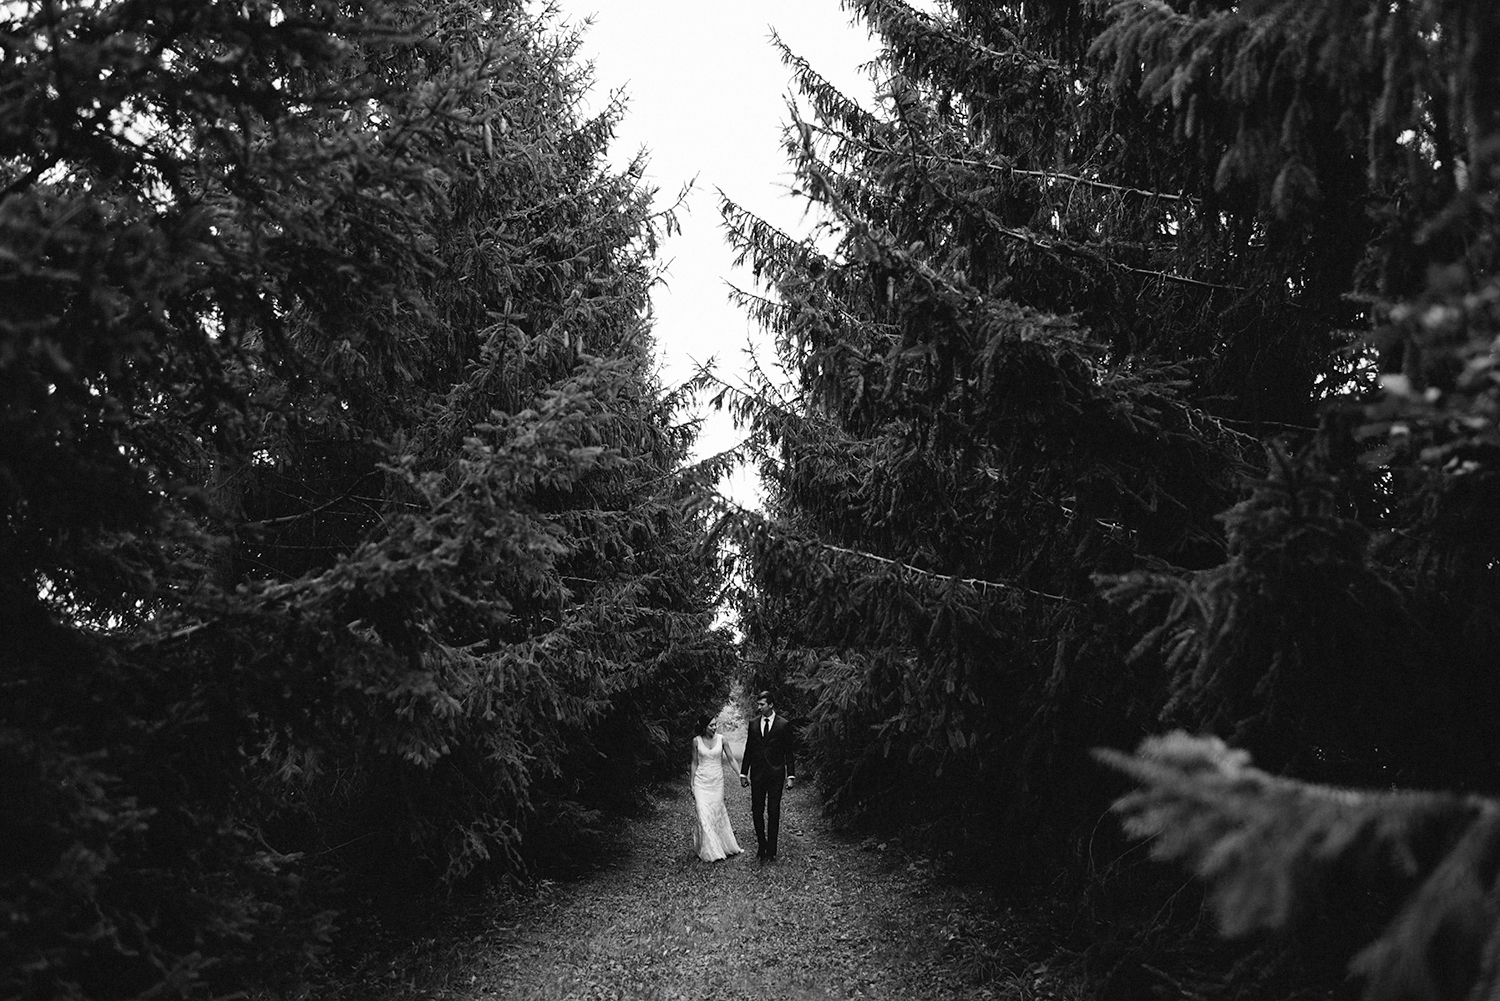 bw-bride-and-groom-couples-portraits-in-forest-wilderness-outdoors-romantic-moody-walking-real-moments-photos-toronto's-best-wedding-photographers-candid-documentary-style-photography-london-ontario-winery-wedding-inspiration.jpg